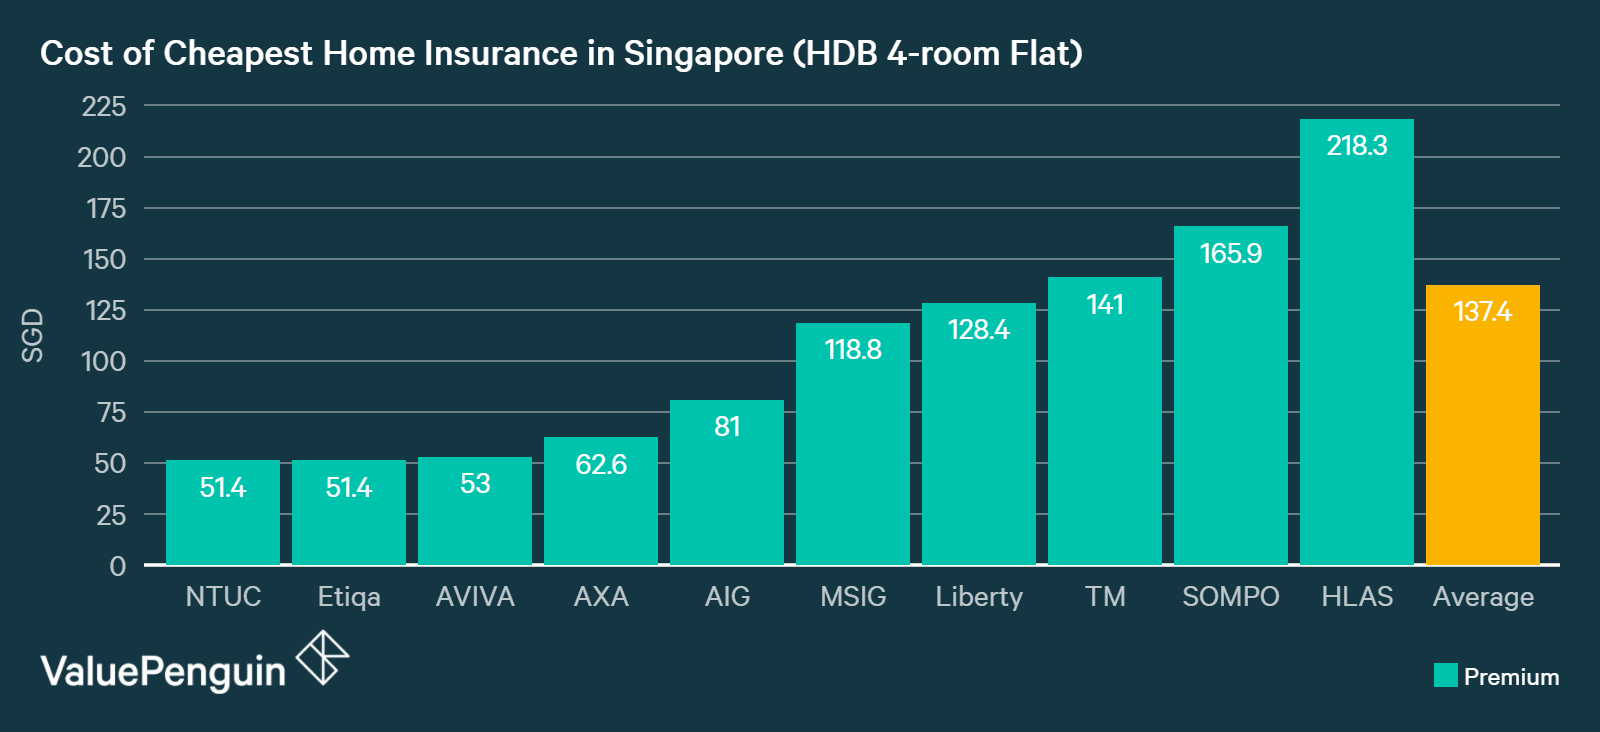 this graph compares the costs of home insurance in Singapore for 4-room HDB flats from major insurance companies